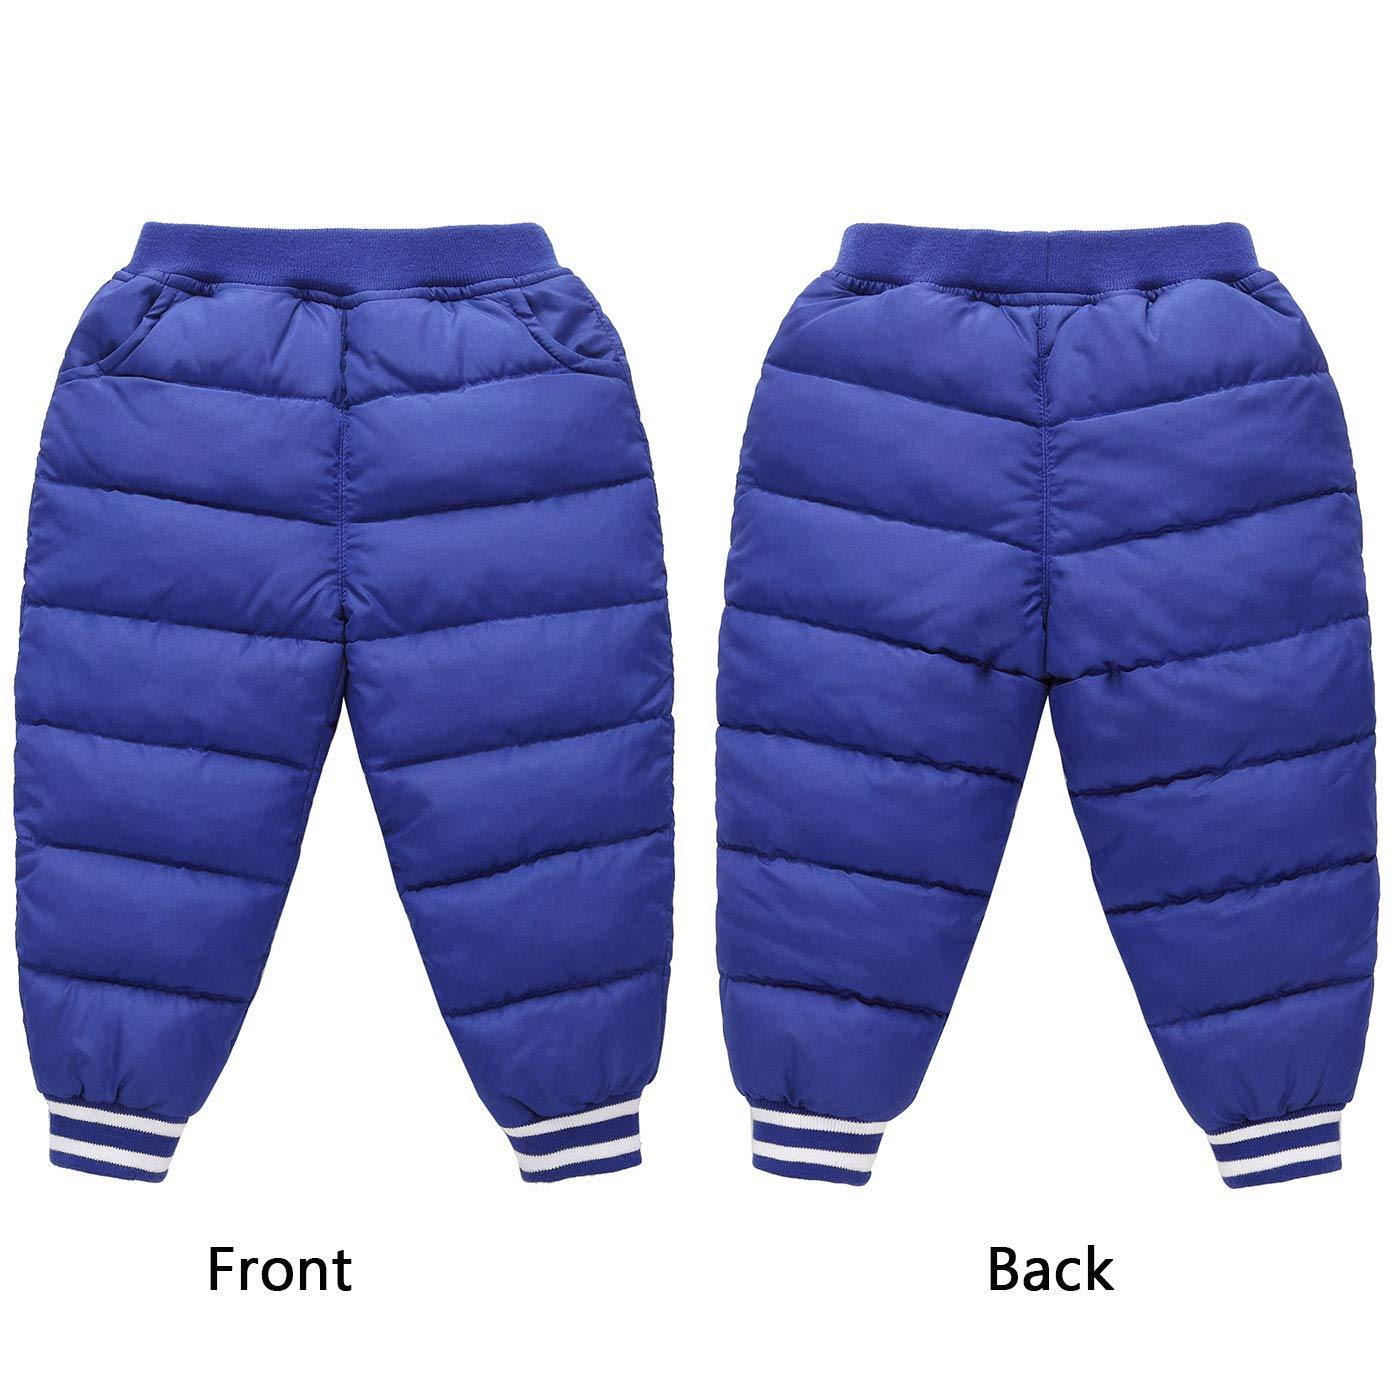 Winter Boy Girl High Waist Thicken Down Pants Elasticity Warm Trousers Blue for 4-5T